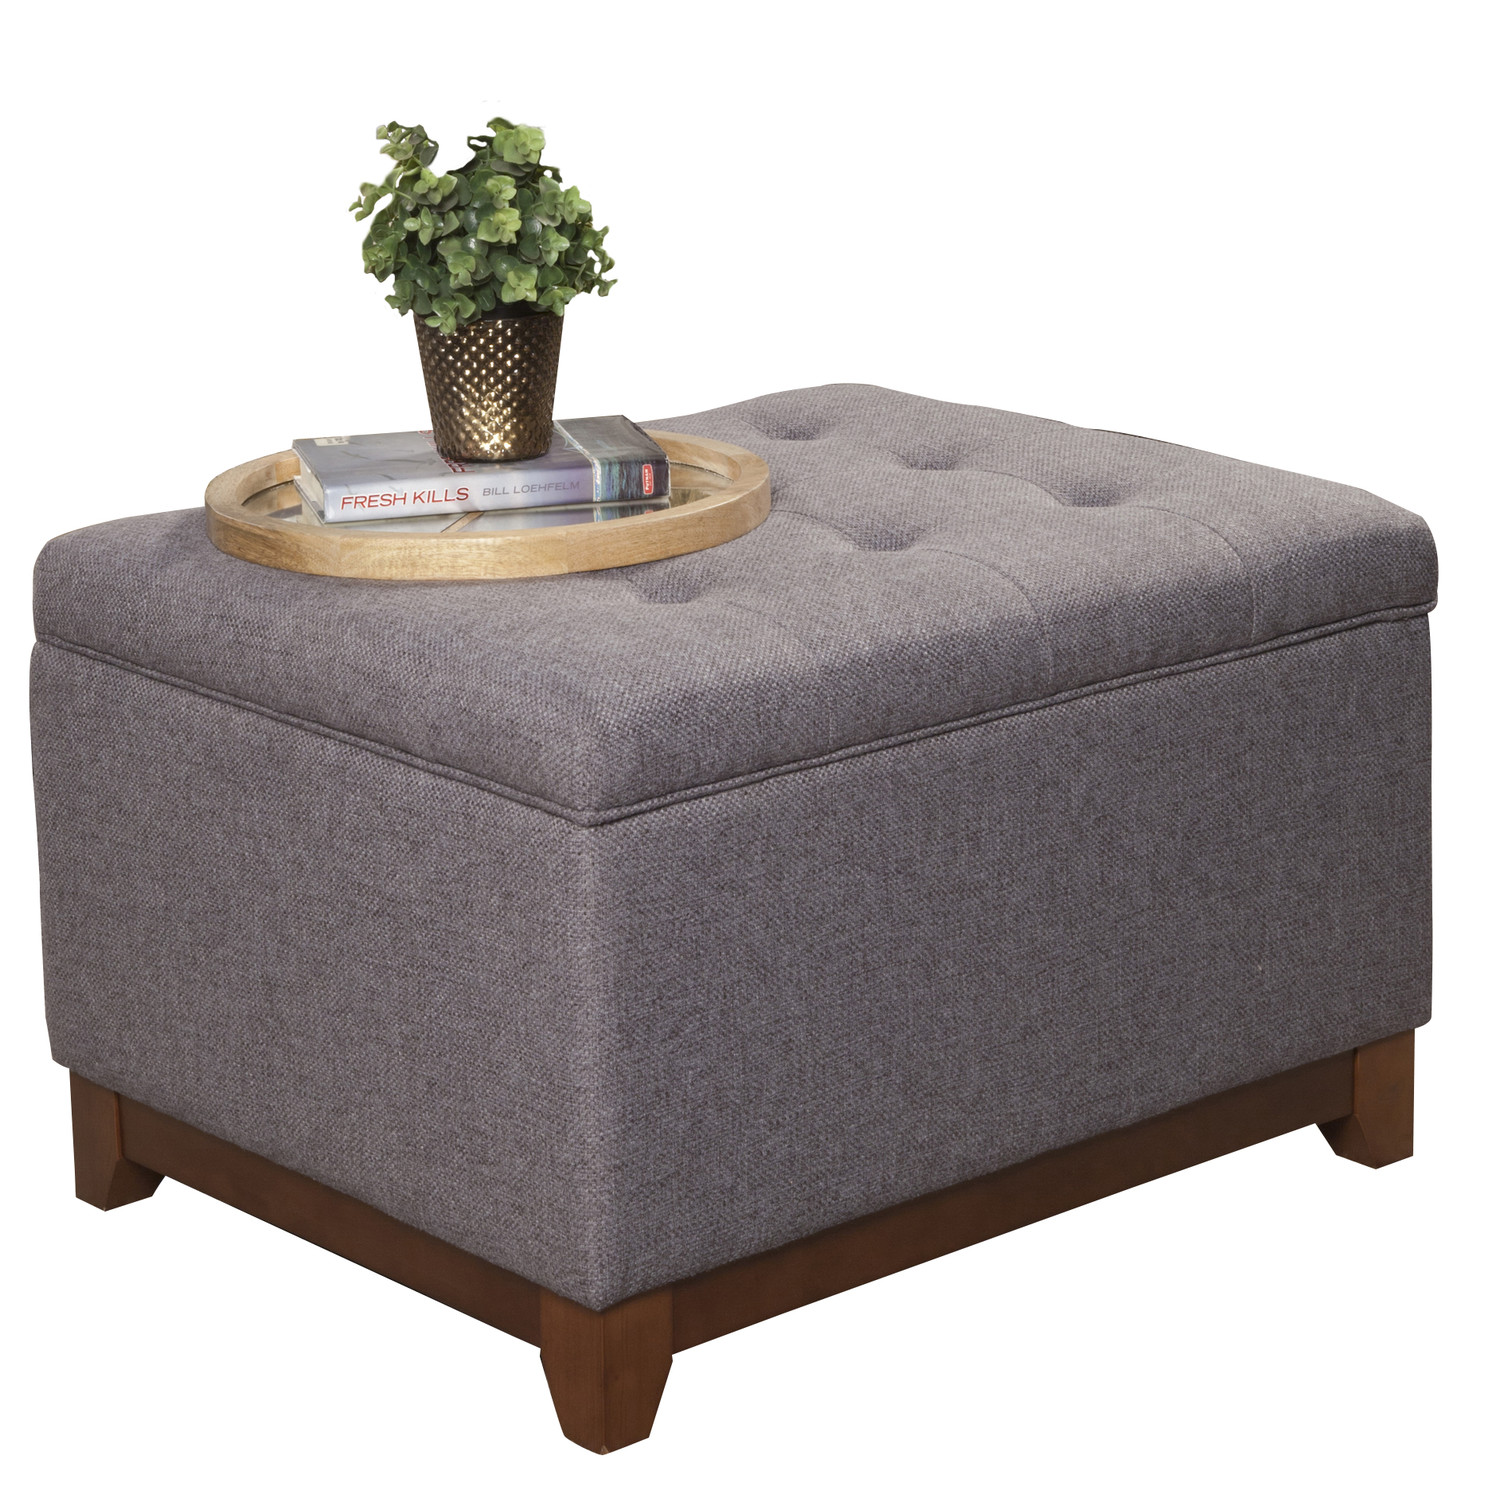 Ottomans And Poufs Round Upholstered Ottoman Coffee Table Upholstered Storage Cocktail Ottoman Large Cocktail Storage Ottoman (View 6 of 10)